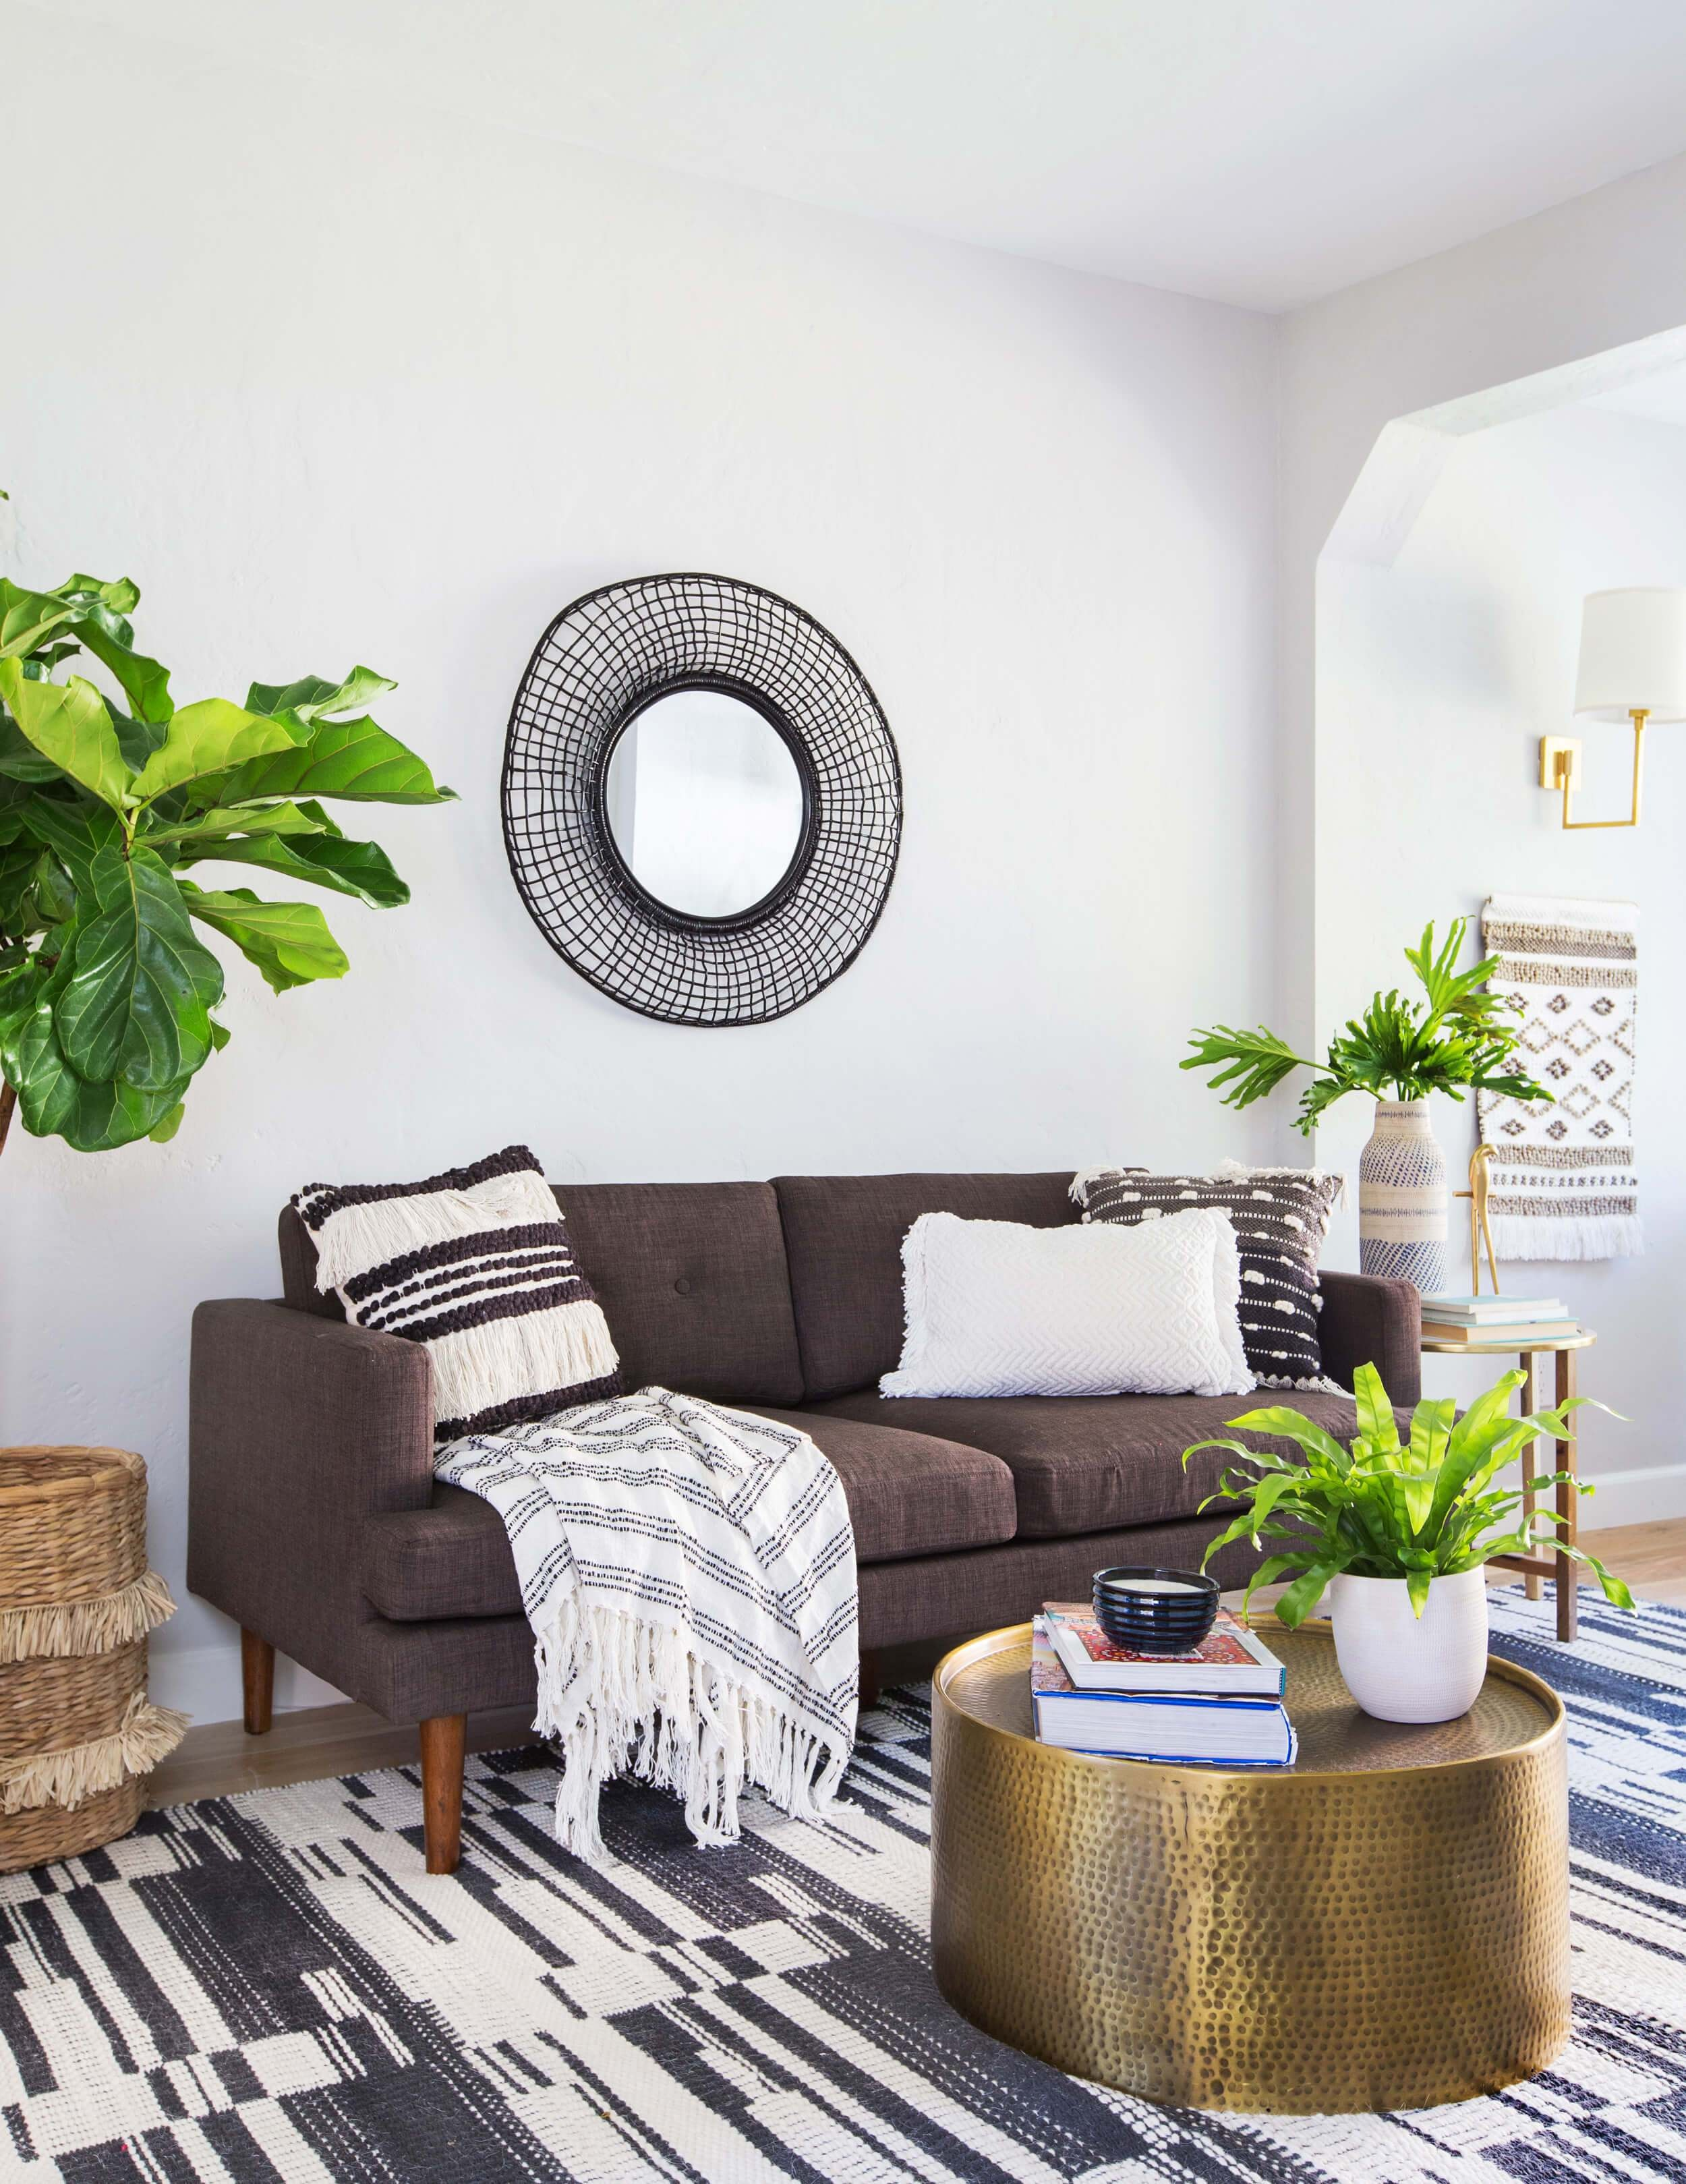 How To Fake That Emily Henderson Is Your Designer Inspired Home 10